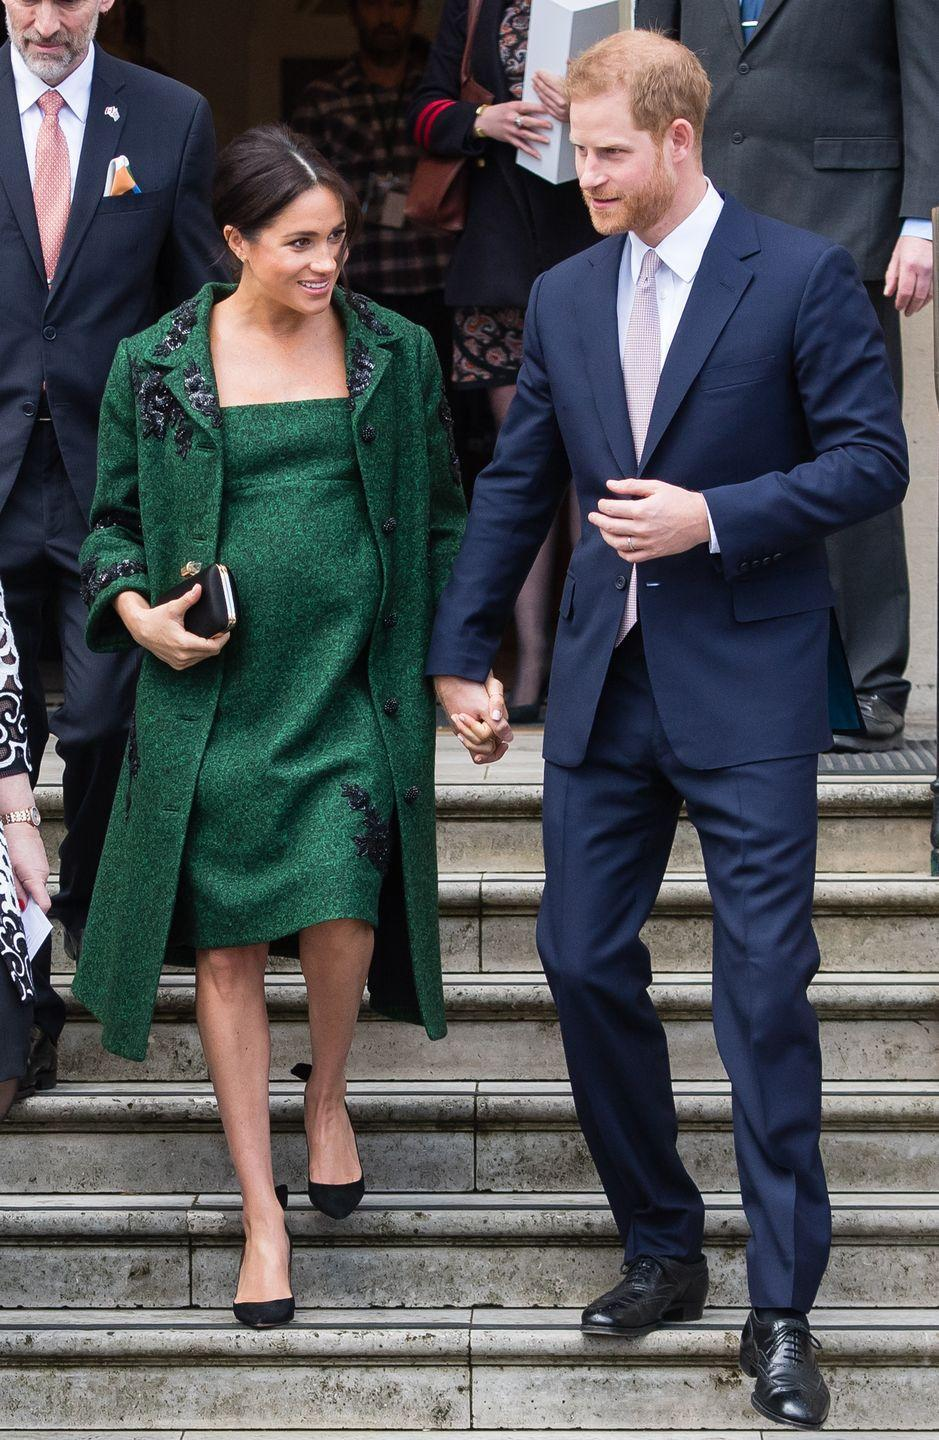 """<p>For the Duke and Duchess's visit to Canada House on Commonwealth Day, Meghan wore a dark green jacket and dress with sequin detailing that was <a href=""""https://go.redirectingat.com?id=74968X1596630&url=https%3A%2F%2Fwww.net-a-porter.com%2Fus%2Fen%2FShop%2FDesigners%2FErdem&sref=https%3A%2F%2Fwww.townandcountrymag.com%2Fstyle%2Ffashion-trends%2Fg3272%2Fmeghan-markle-preppy-style%2F"""" rel=""""nofollow noopener"""" target=""""_blank"""" data-ylk=""""slk:custom made by Erdem"""" class=""""link rapid-noclick-resp"""">custom made by Erdem</a>, <a href=""""https://go.redirectingat.com?id=74968X1596630&url=https%3A%2F%2Fwww.gettyimages.com%2Fdetail%2Fnews-photo%2Fprince-harry-duke-of-sussex-and-meghan-duchess-of-sussex-news-photo%2F1135098814&sref=https%3A%2F%2Fwww.townandcountrymag.com%2Fstyle%2Ffashion-trends%2Fg3272%2Fmeghan-markle-preppy-style%2F"""" rel=""""nofollow noopener"""" target=""""_blank"""" data-ylk=""""slk:Aquazzura heels"""" class=""""link rapid-noclick-resp"""">Aquazzura heels</a> and a <a href=""""https://www.townandcountrymag.com/style/fashion-trends/g3272/meghan-markle-preppy-style/?slide=67"""" rel=""""nofollow noopener"""" target=""""_blank"""" data-ylk=""""slk:Givenchy clutch"""" class=""""link rapid-noclick-resp"""">Givenchy clutch</a>. </p><p><a class=""""link rapid-noclick-resp"""" href=""""https://go.redirectingat.com?id=74968X1596630&url=https%3A%2F%2Fshop.nordstrom.com%2Fs%2Faquazzura-deneuve-bow-pointy-toe-pump-women%2F4948641&sref=https%3A%2F%2Fwww.townandcountrymag.com%2Fstyle%2Ffashion-trends%2Fg3272%2Fmeghan-markle-preppy-style%2F"""" rel=""""nofollow noopener"""" target=""""_blank"""" data-ylk=""""slk:Shop Now"""">Shop Now</a><em>Deneuve Pumps, Aquazzura, $750</em></p>"""